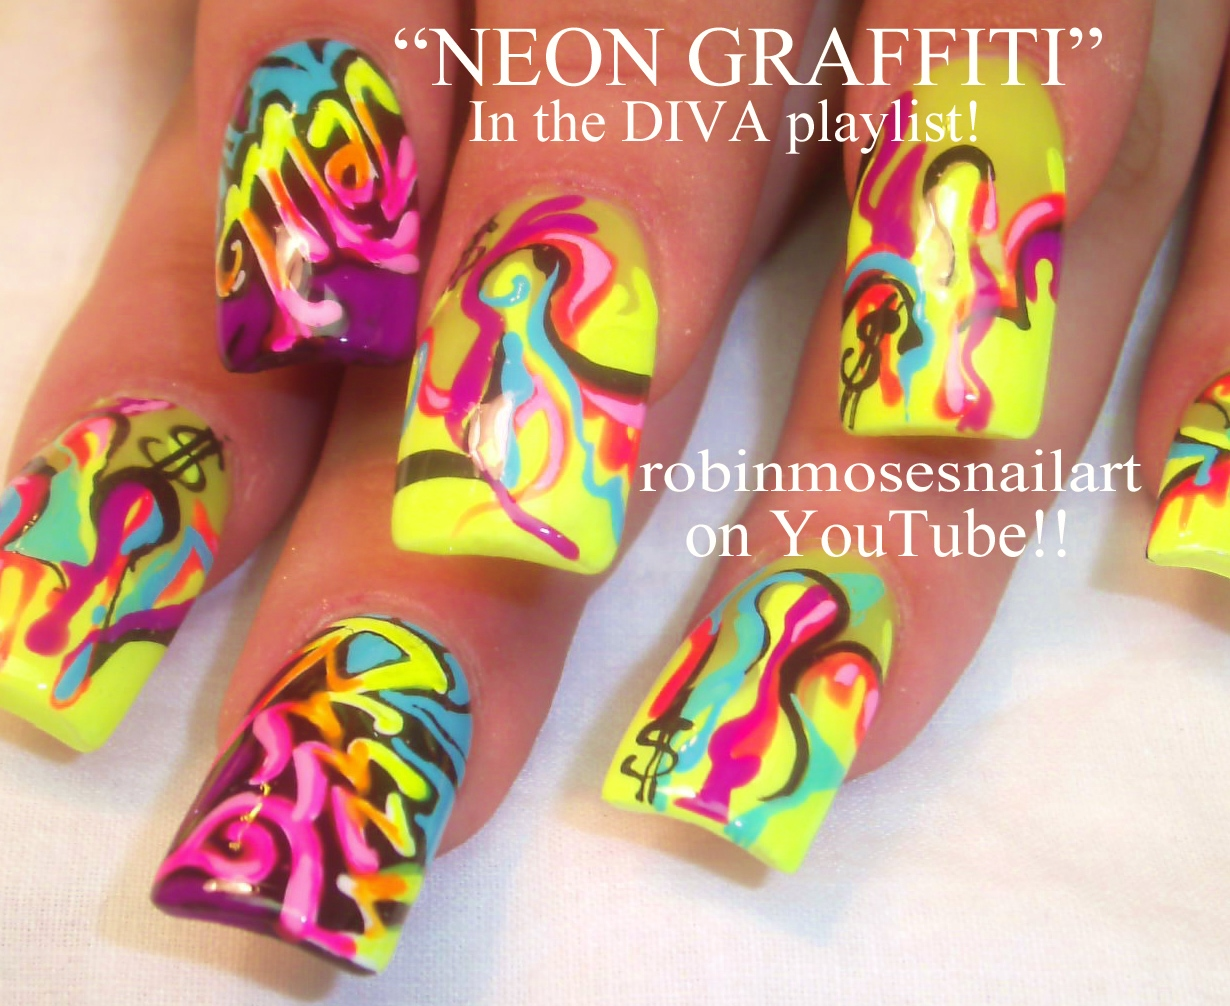 Nail art by robin moses neon graffiti neon graffiti nail art neon graffiti nail art solutioingenieria Image collections